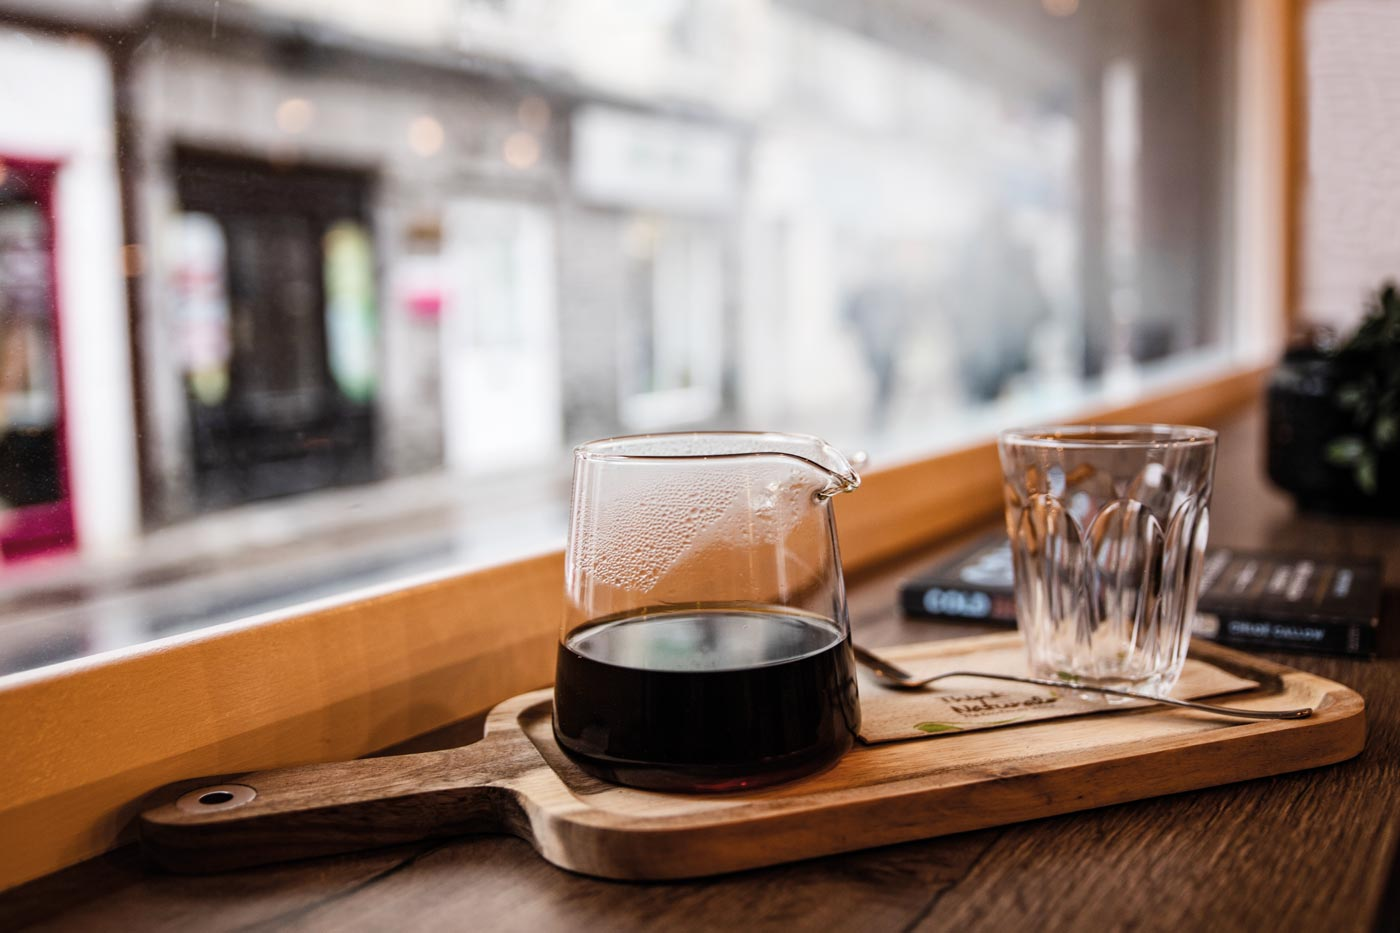 filter coffee in a jug